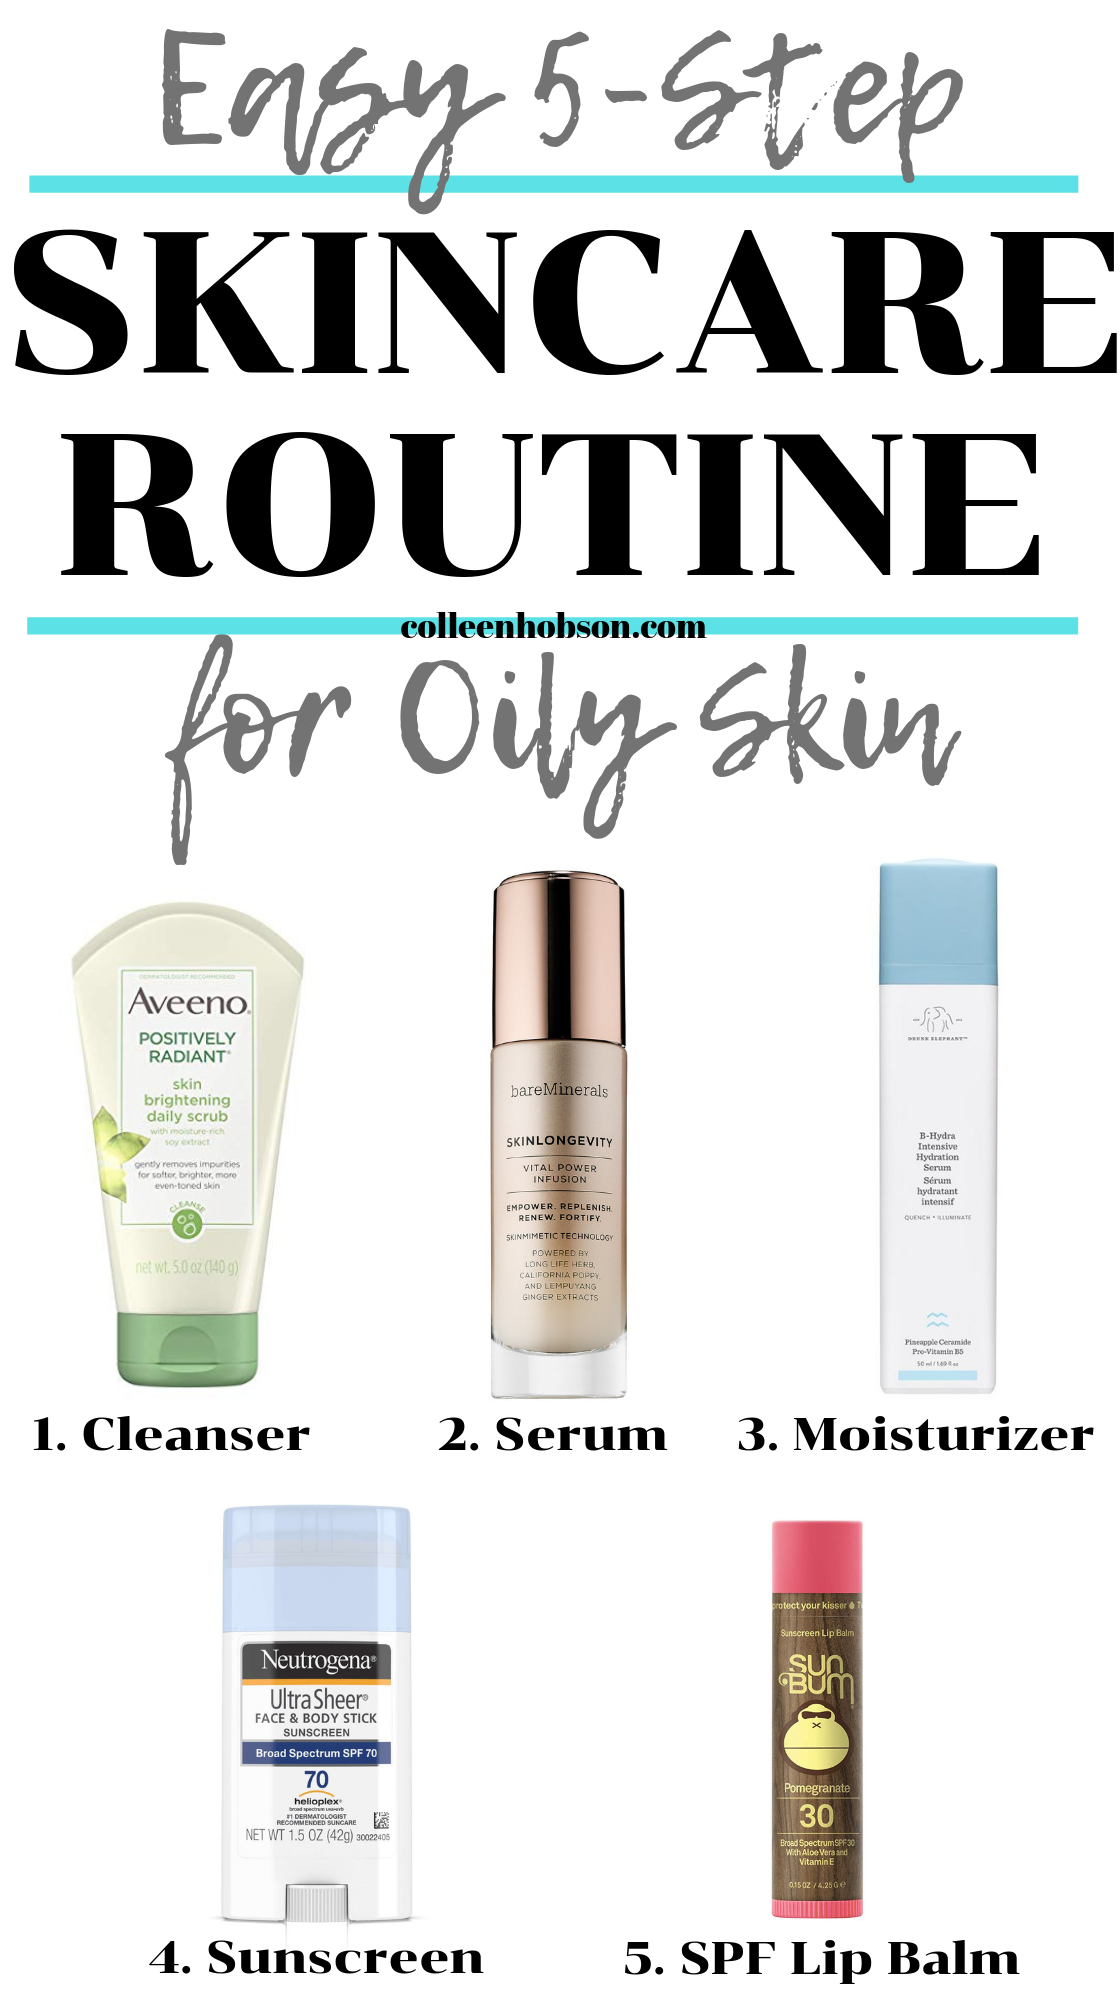 Daily Skincare Routine For Oily Skin Dry Skin Care Daily Skin Care Routine Oily Skin Care